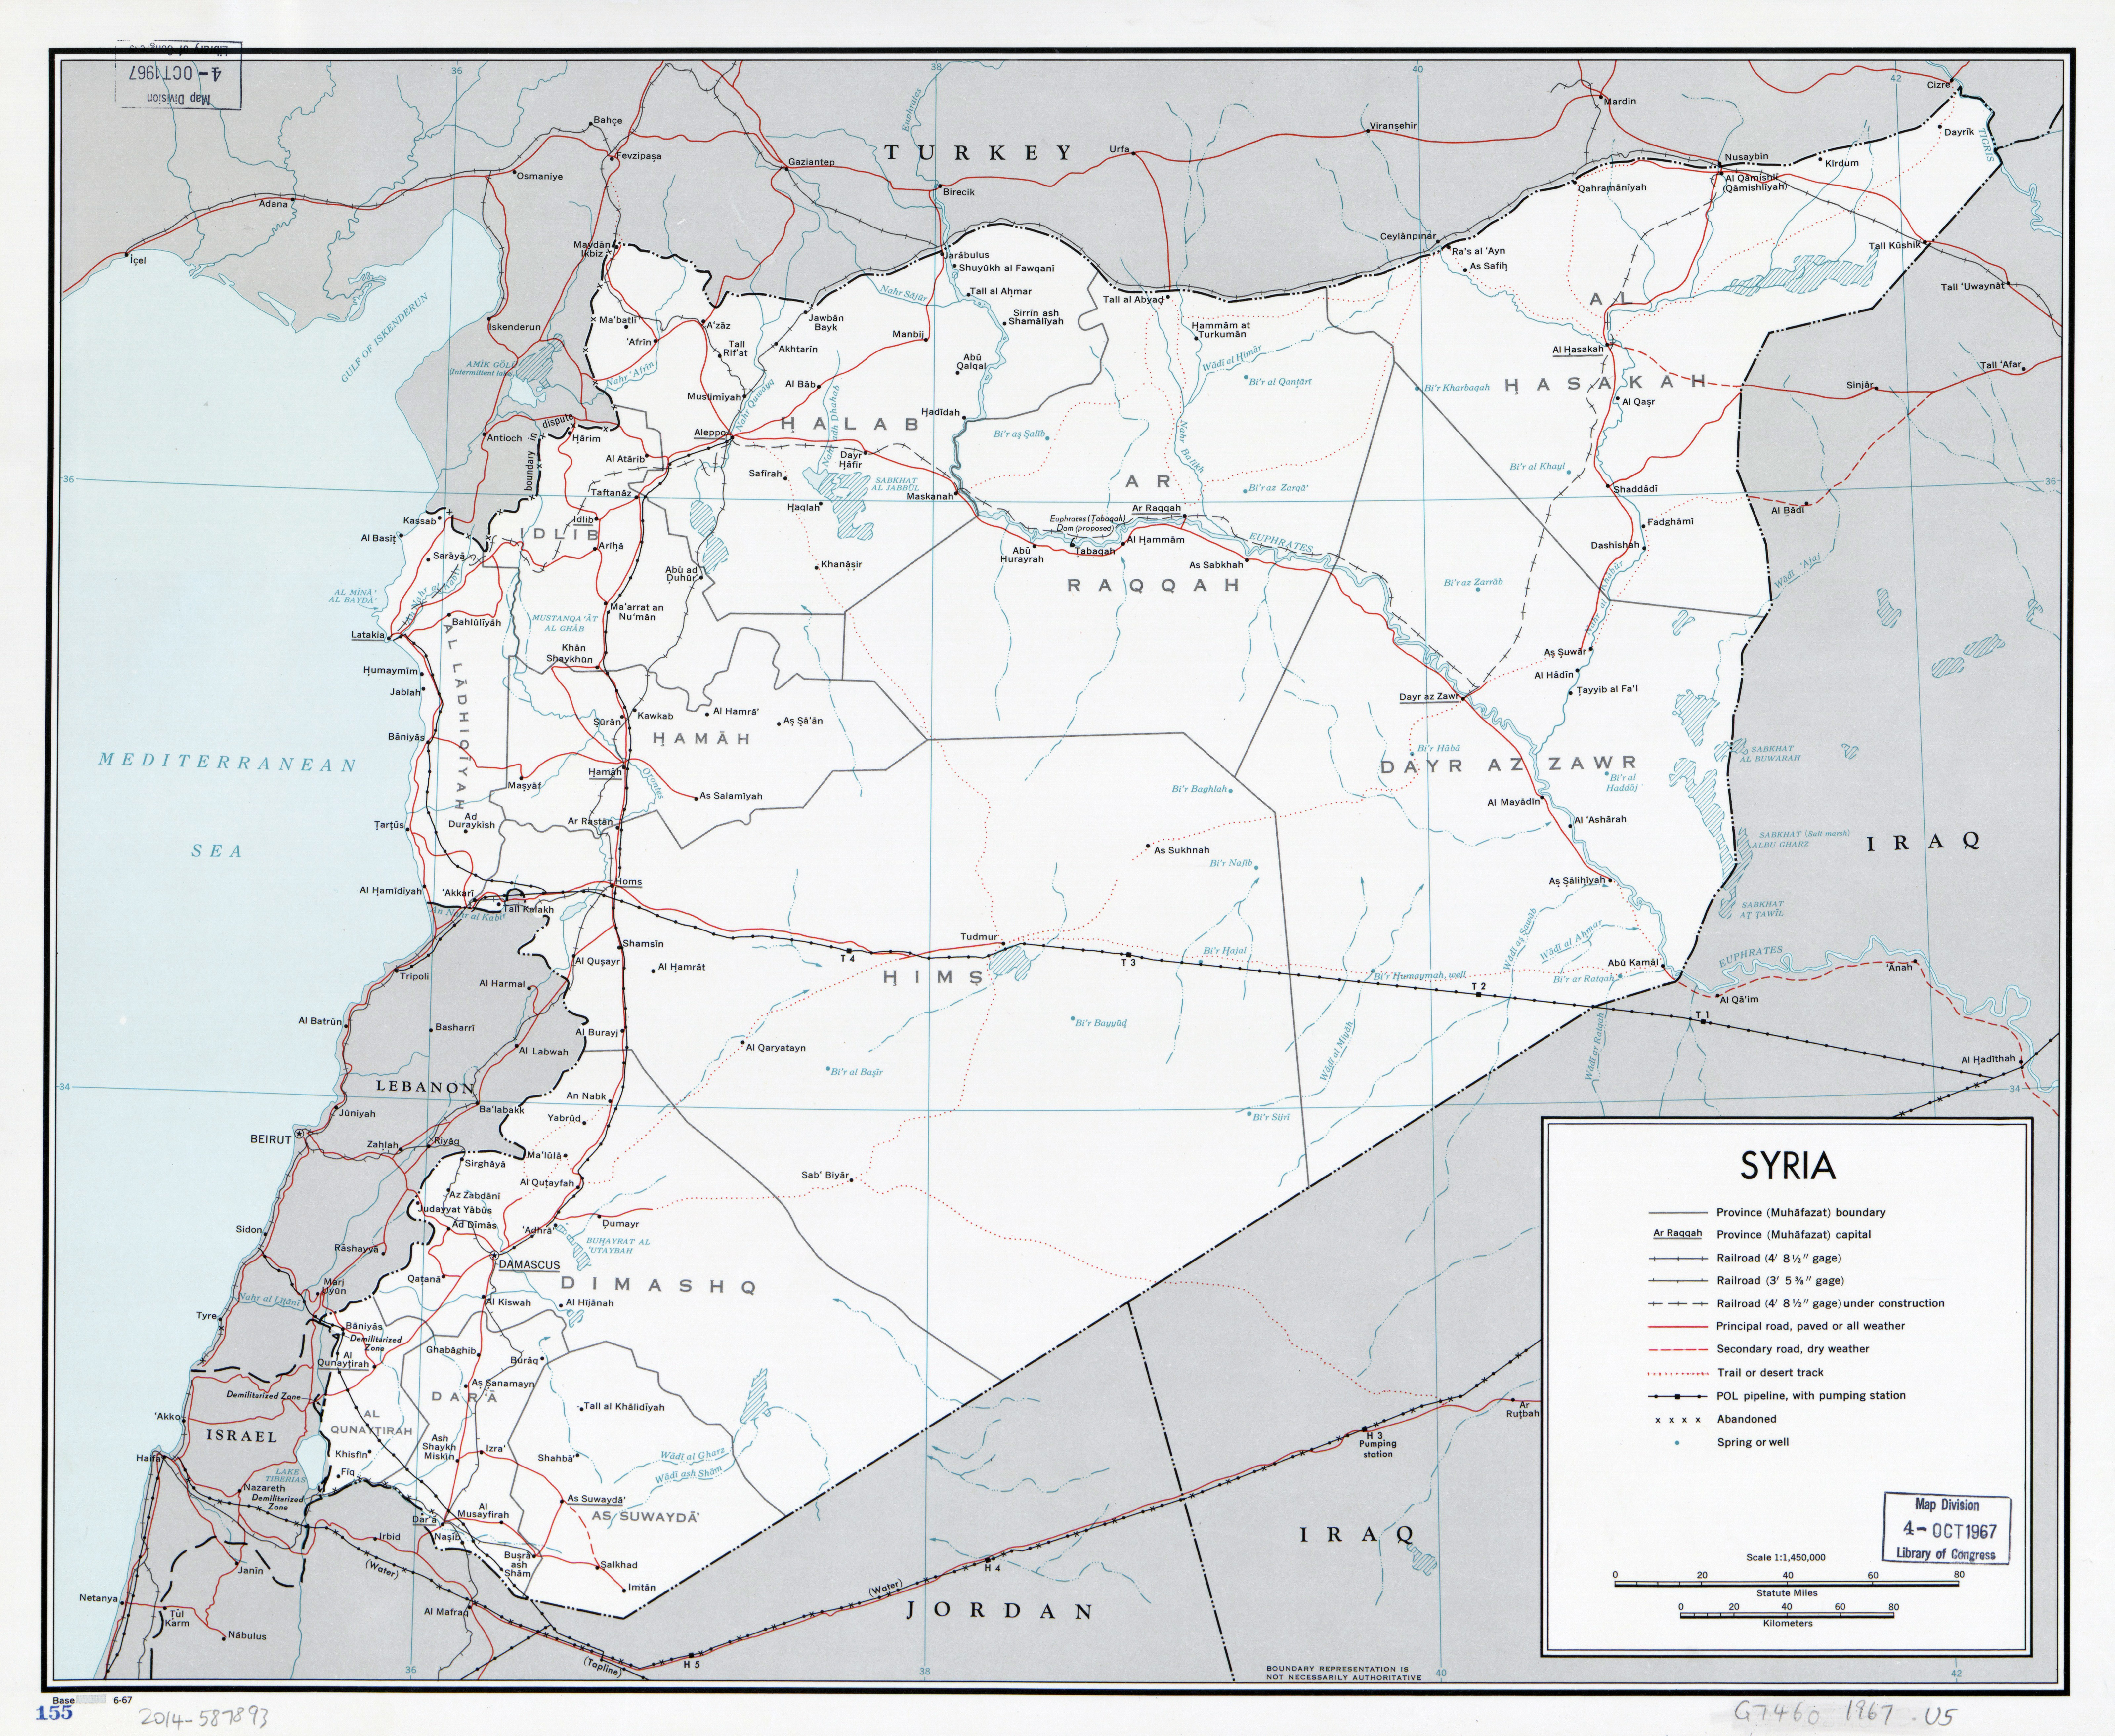 Large scale political and administrative map of Syria with roads